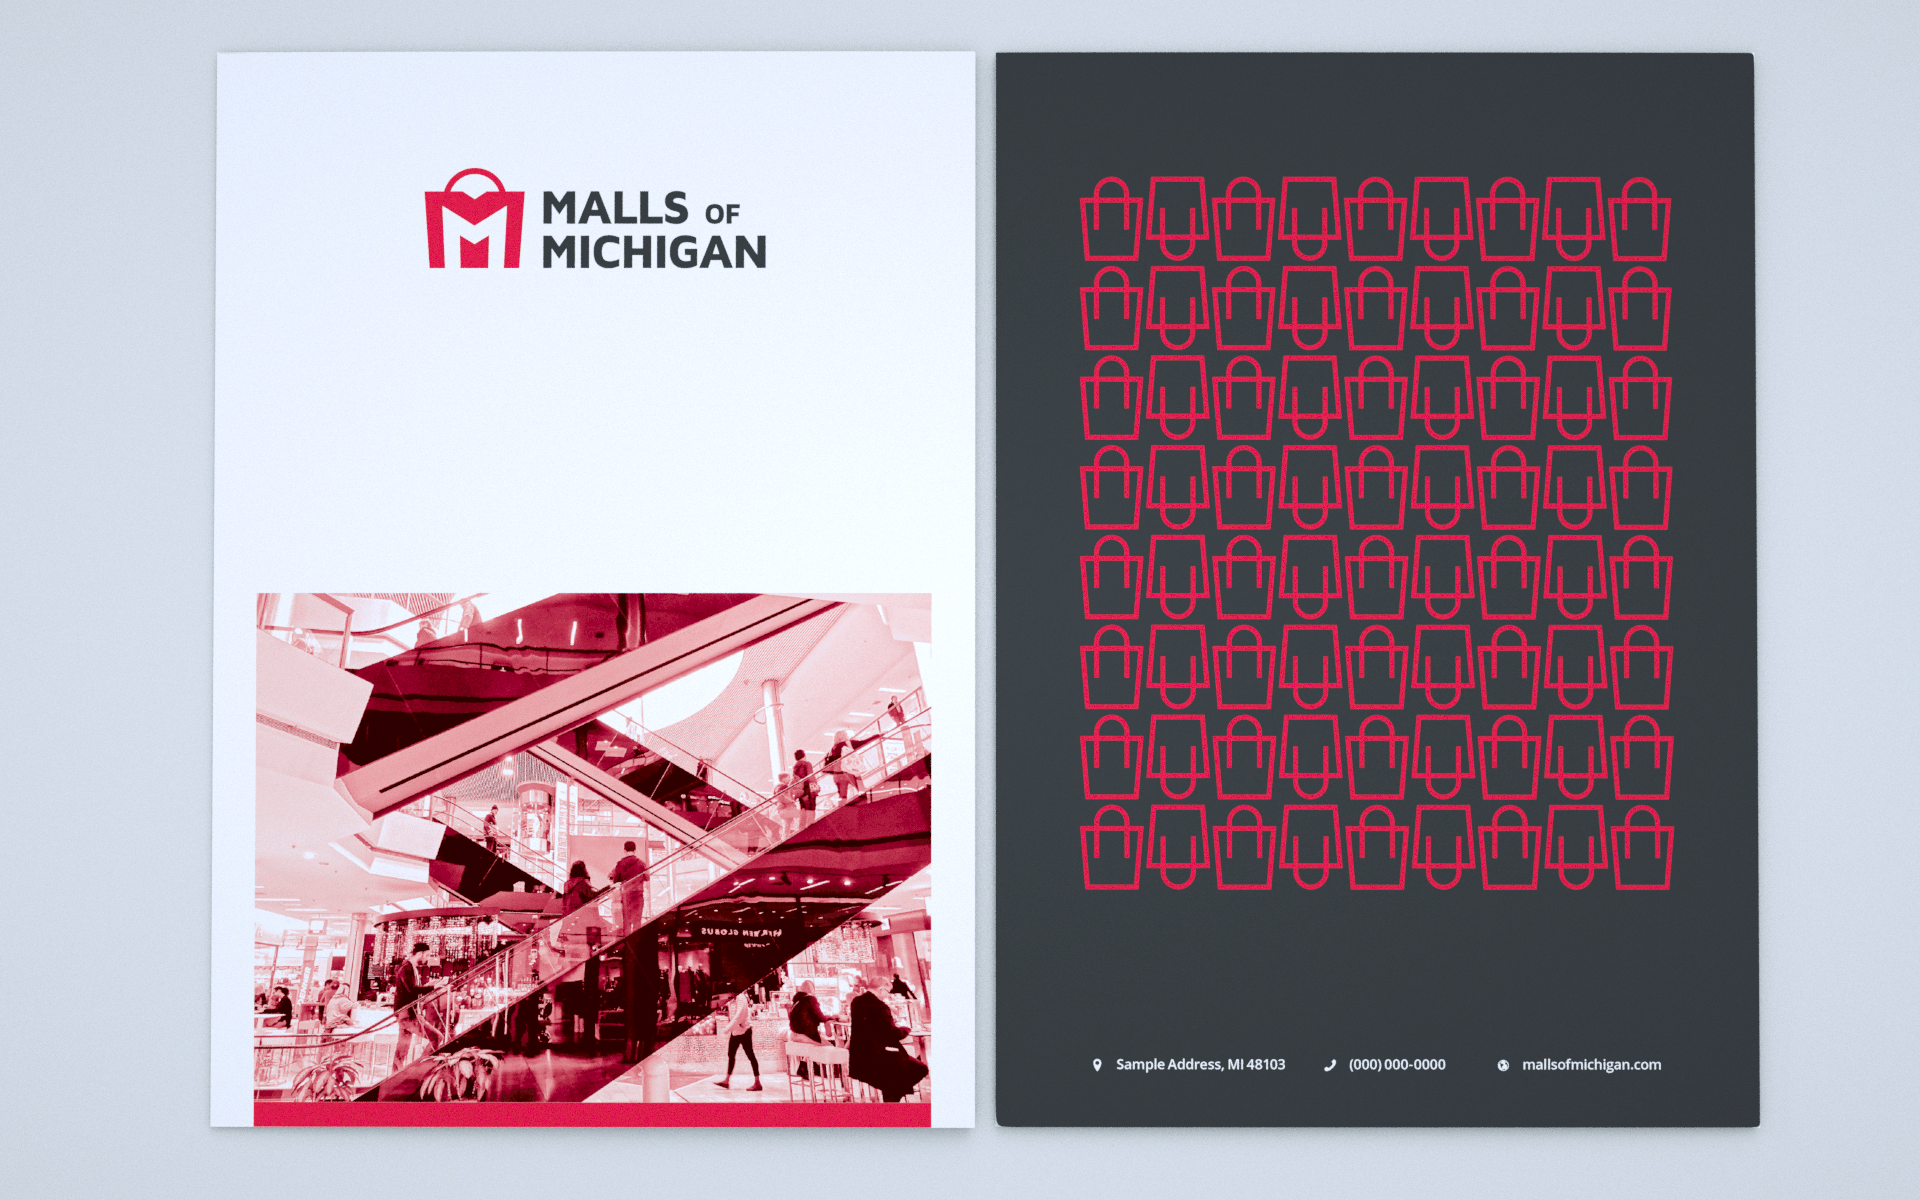 MALLS OF MICHIGAN FOLDER